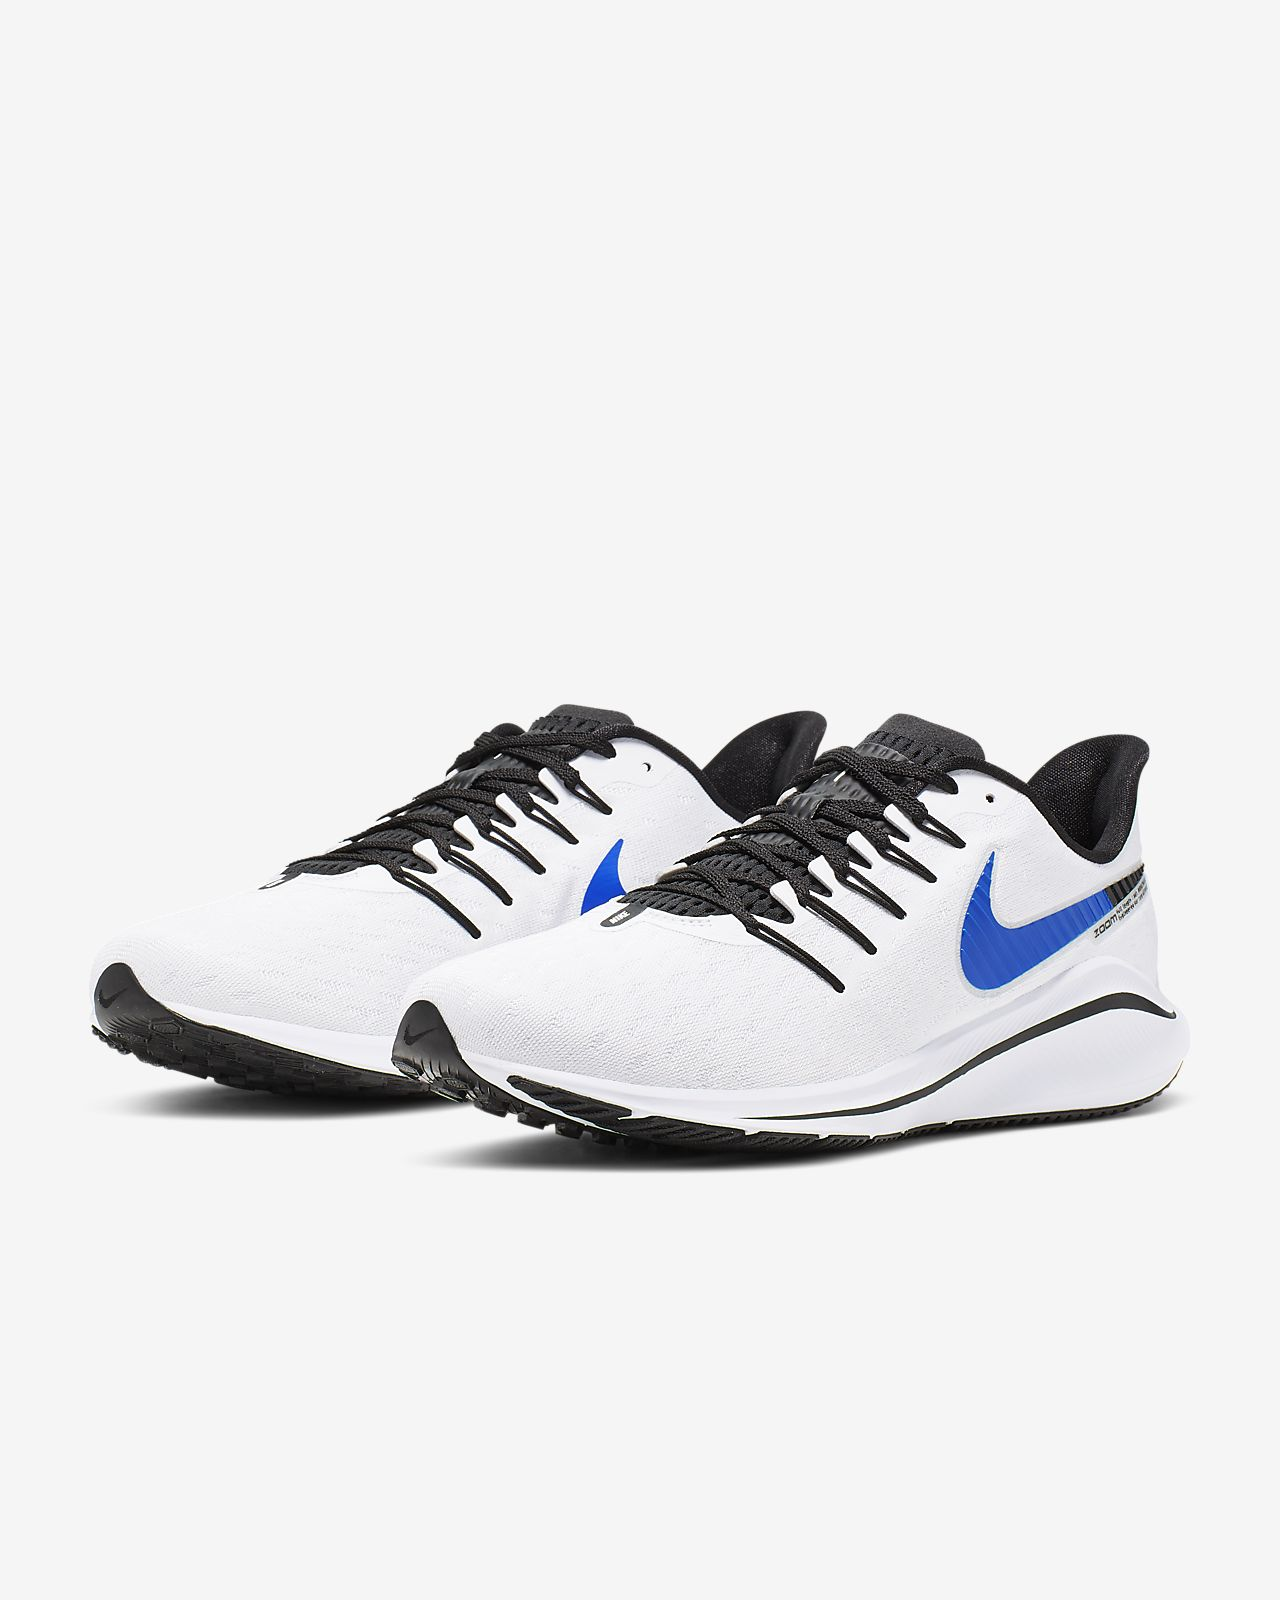 casual shoes outlet on sale sale retailer Nike Air Zoom Vomero 14 Men's Running Shoe